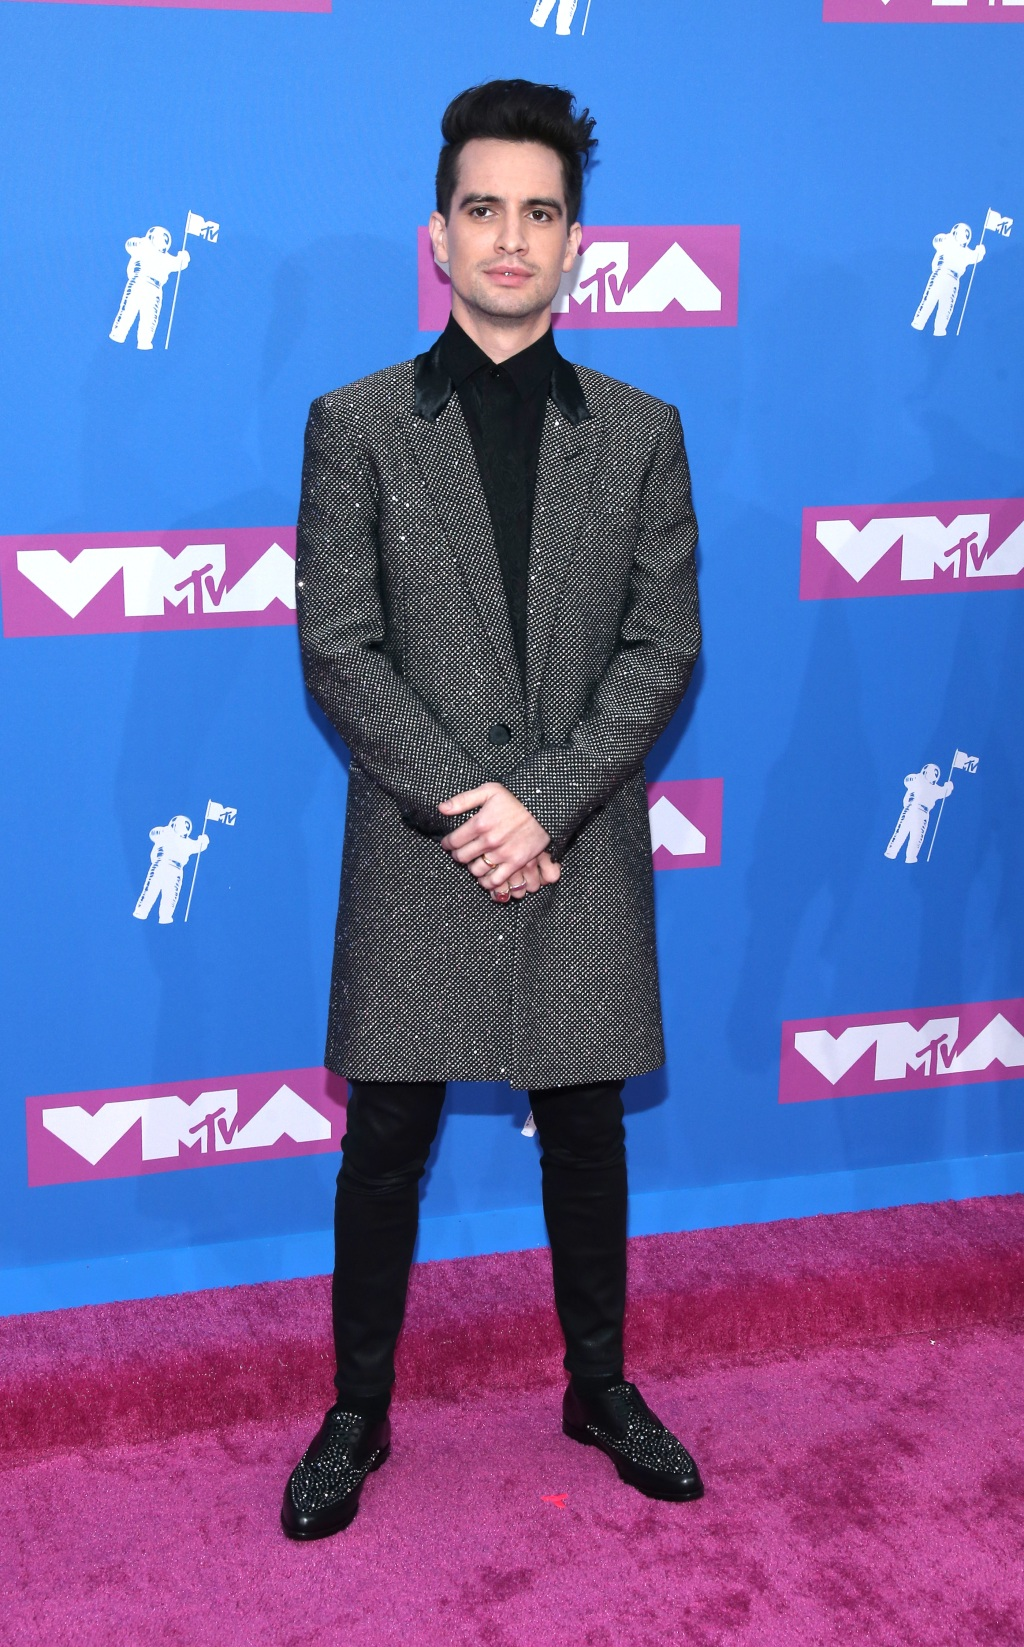 Brendon Urie of Panic! At The Disco (Photo by Paul Zimmerman/WireImage)